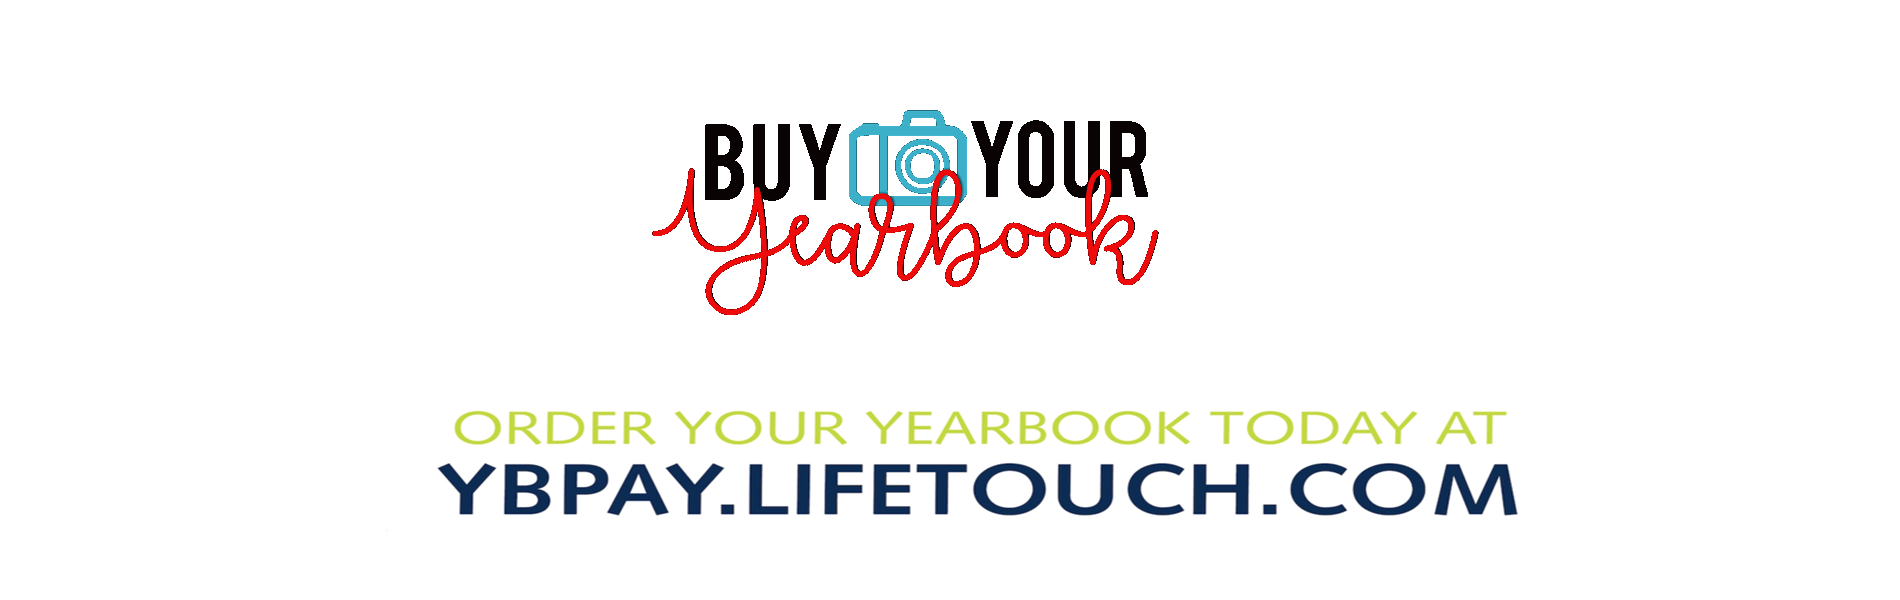 Order your 2020-2021 Yearbook!